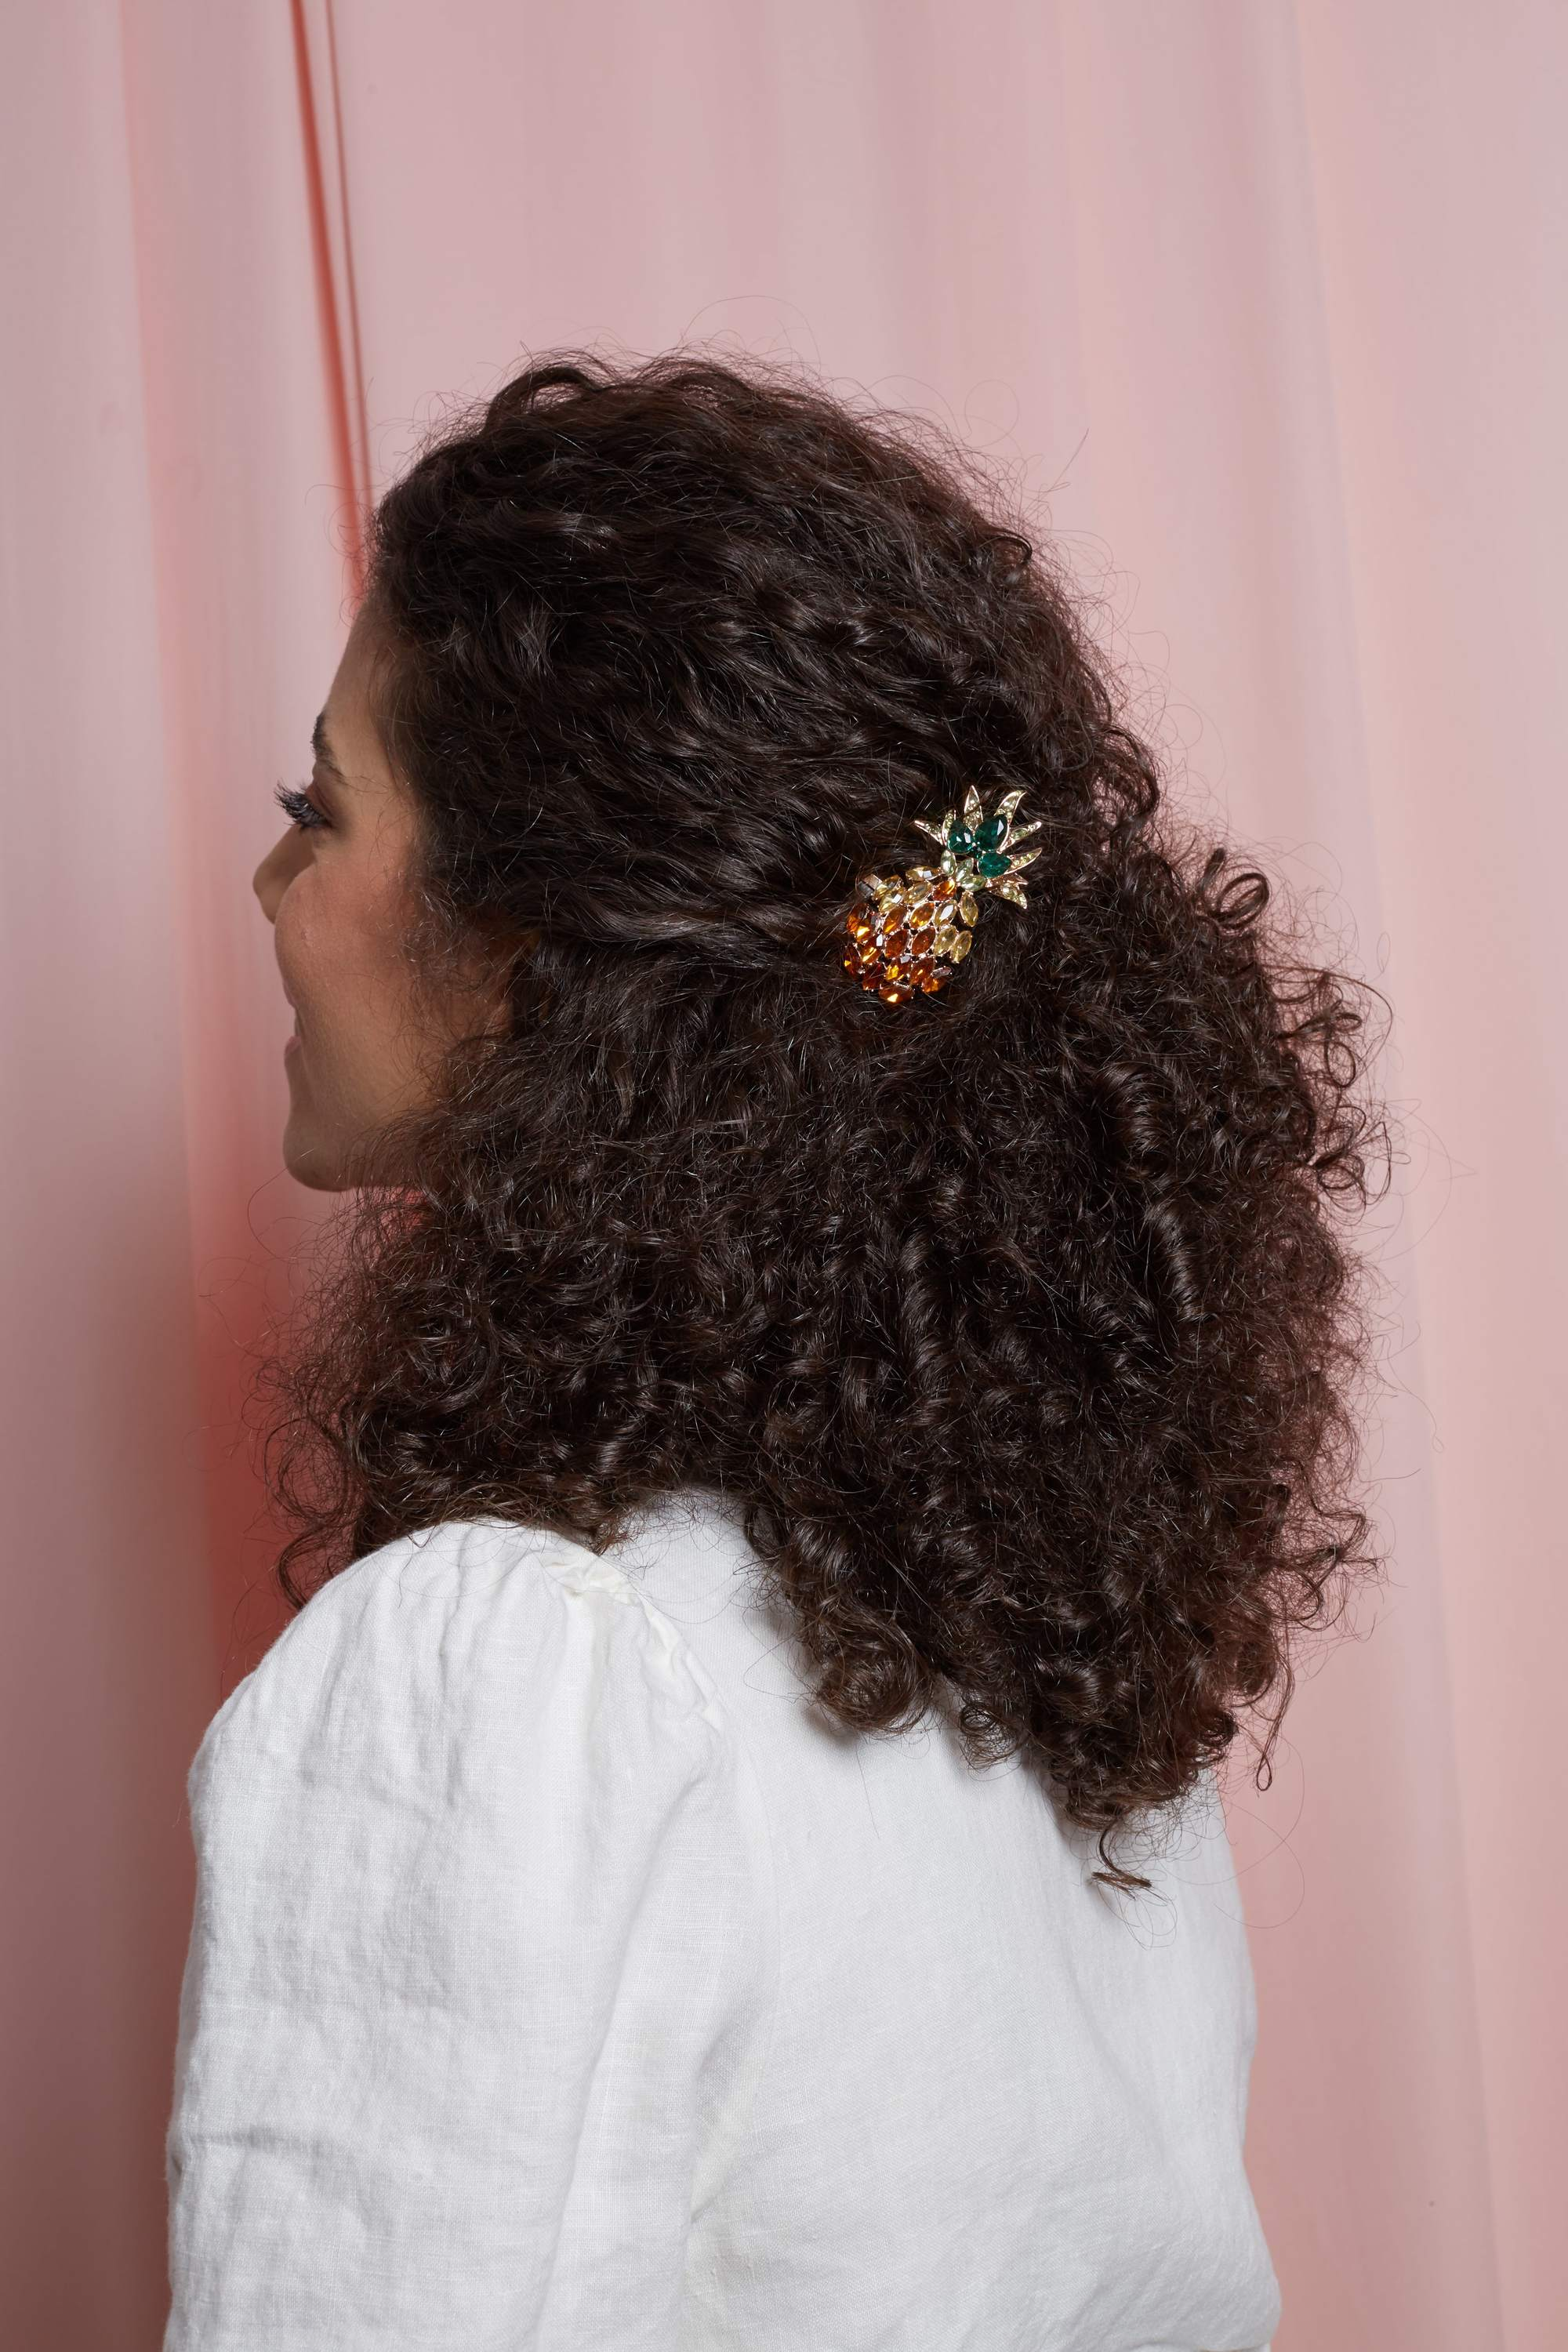 Naturally curly hair in half-up, half-down